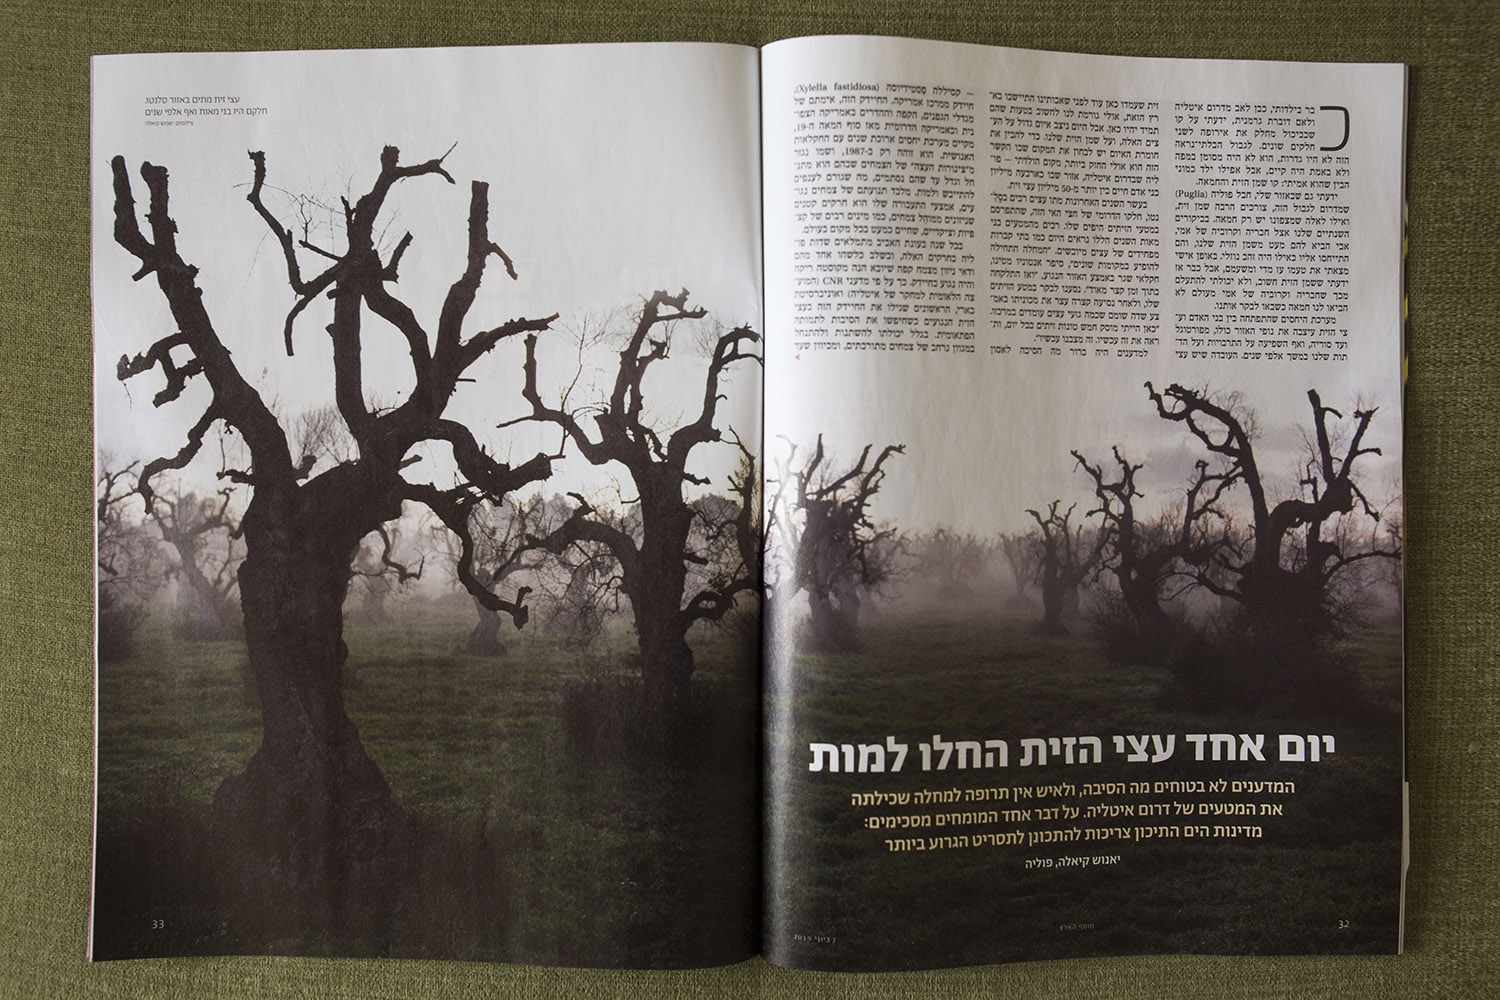 Ha'aretz weekend magazine: The olive trees of Puglia in the time of Xylella. (June 2019) link to article